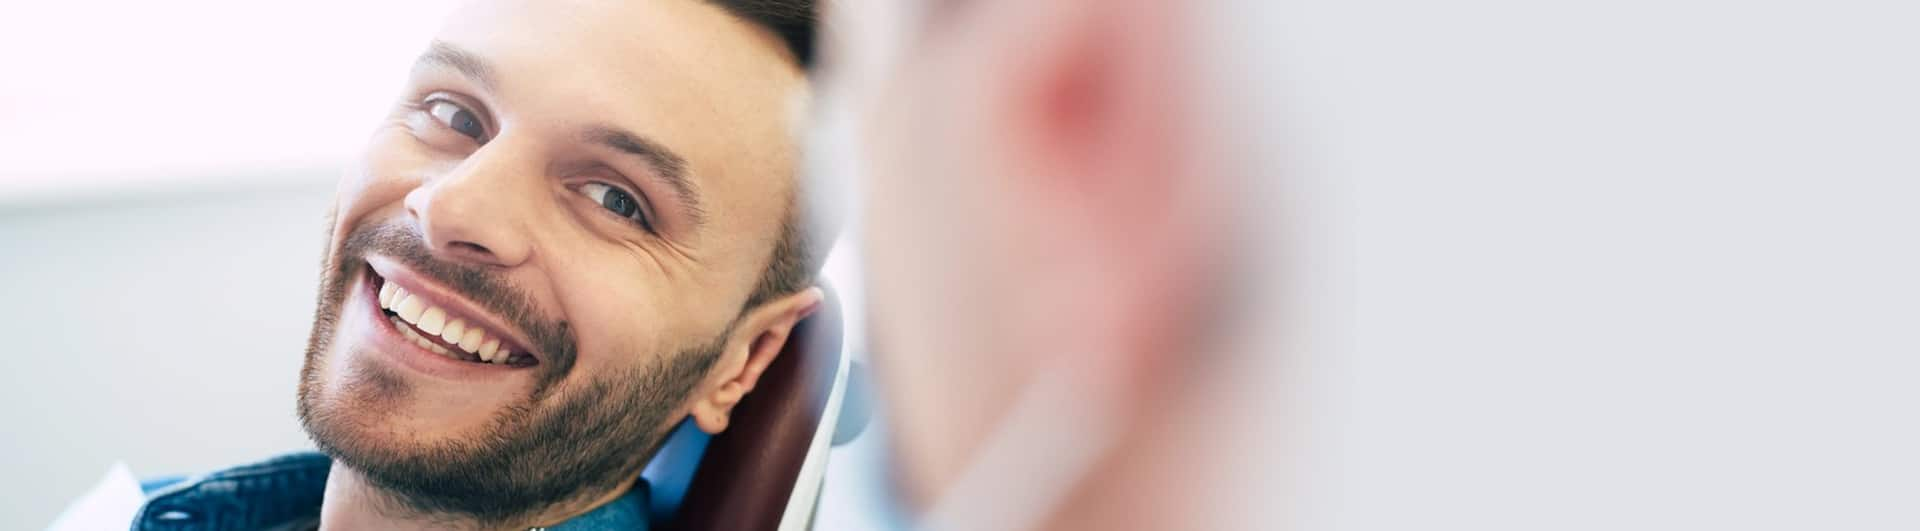 Young bearded man smiling after Restorative Dentistry Hamilton